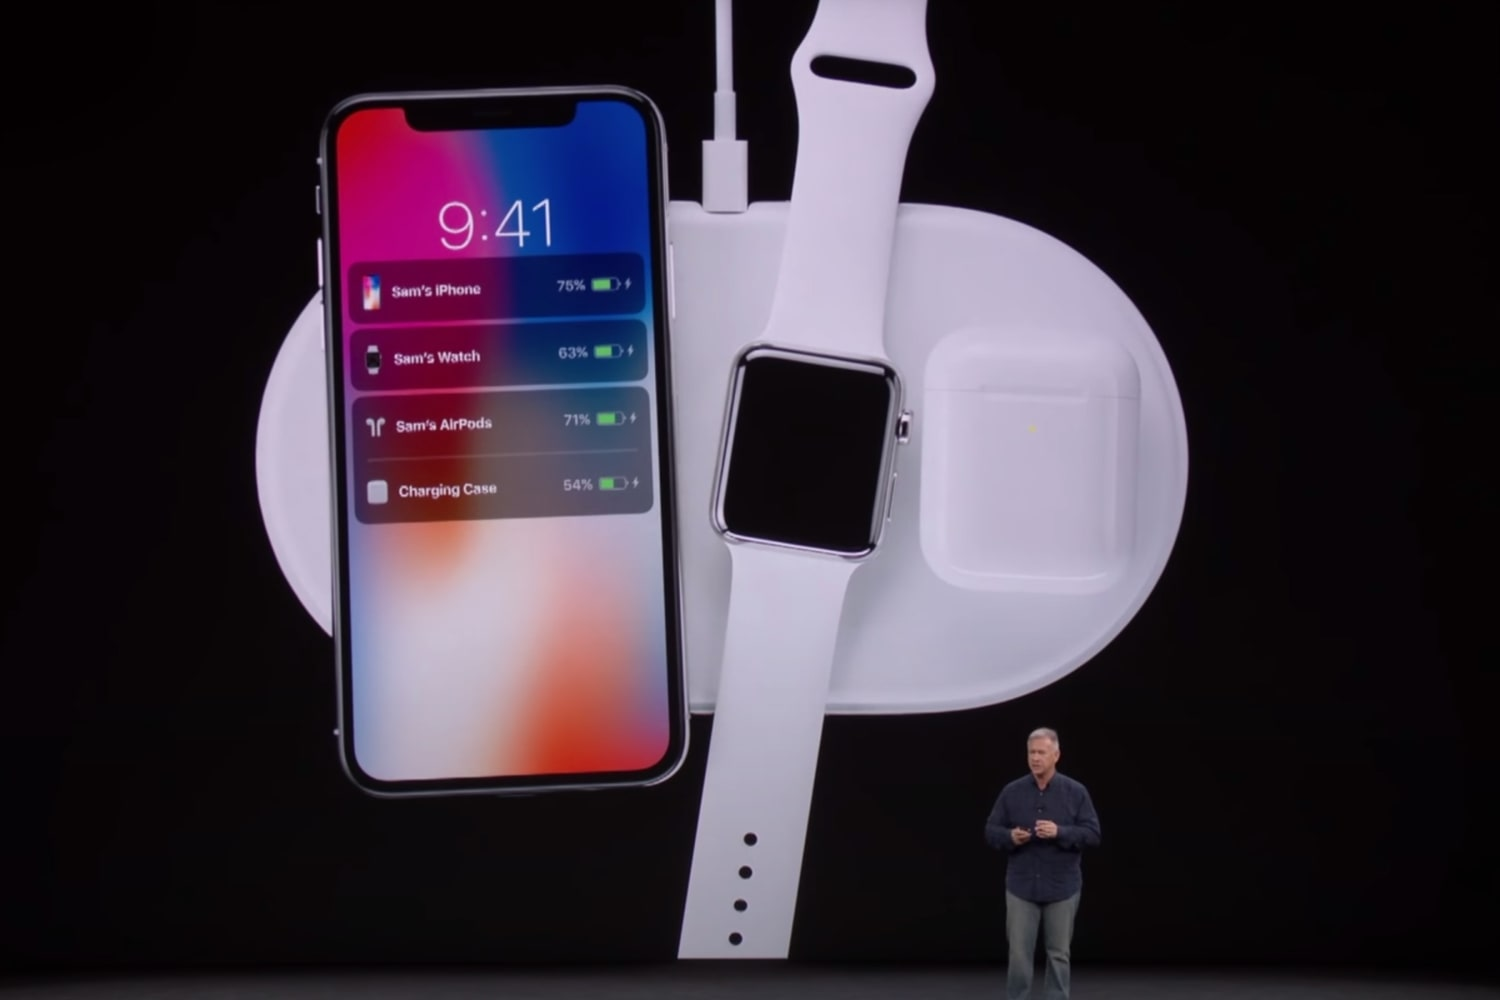 apple-removed-airpower-project-from-2021-lineup-20201027-1